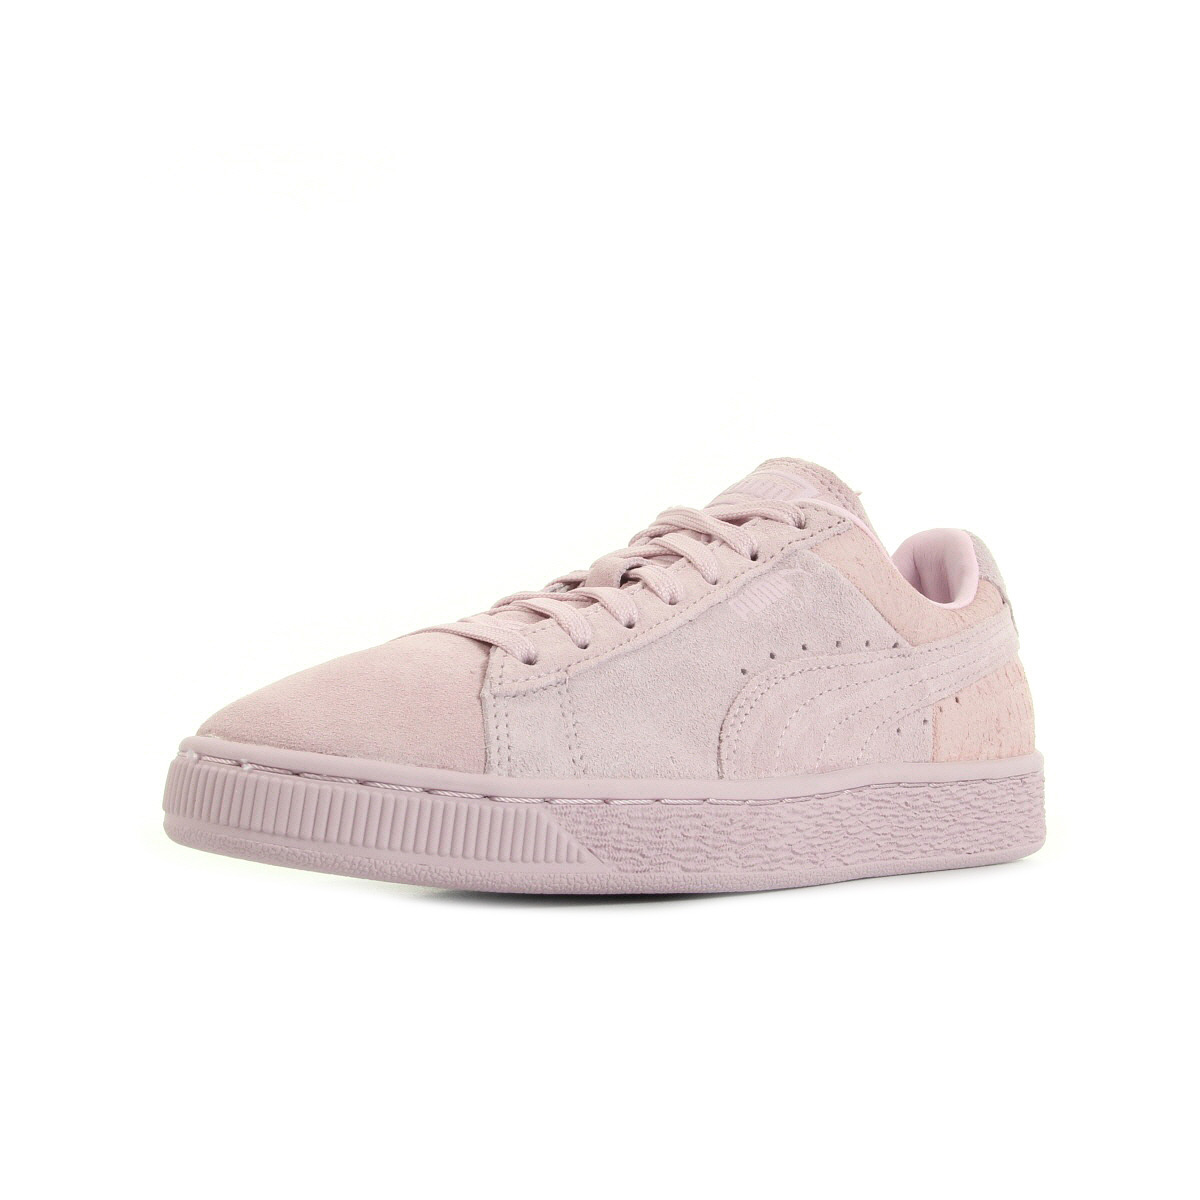 Chaussures Baskets Puma femme Suede Classic Casual Emboss taille Rose Cuir